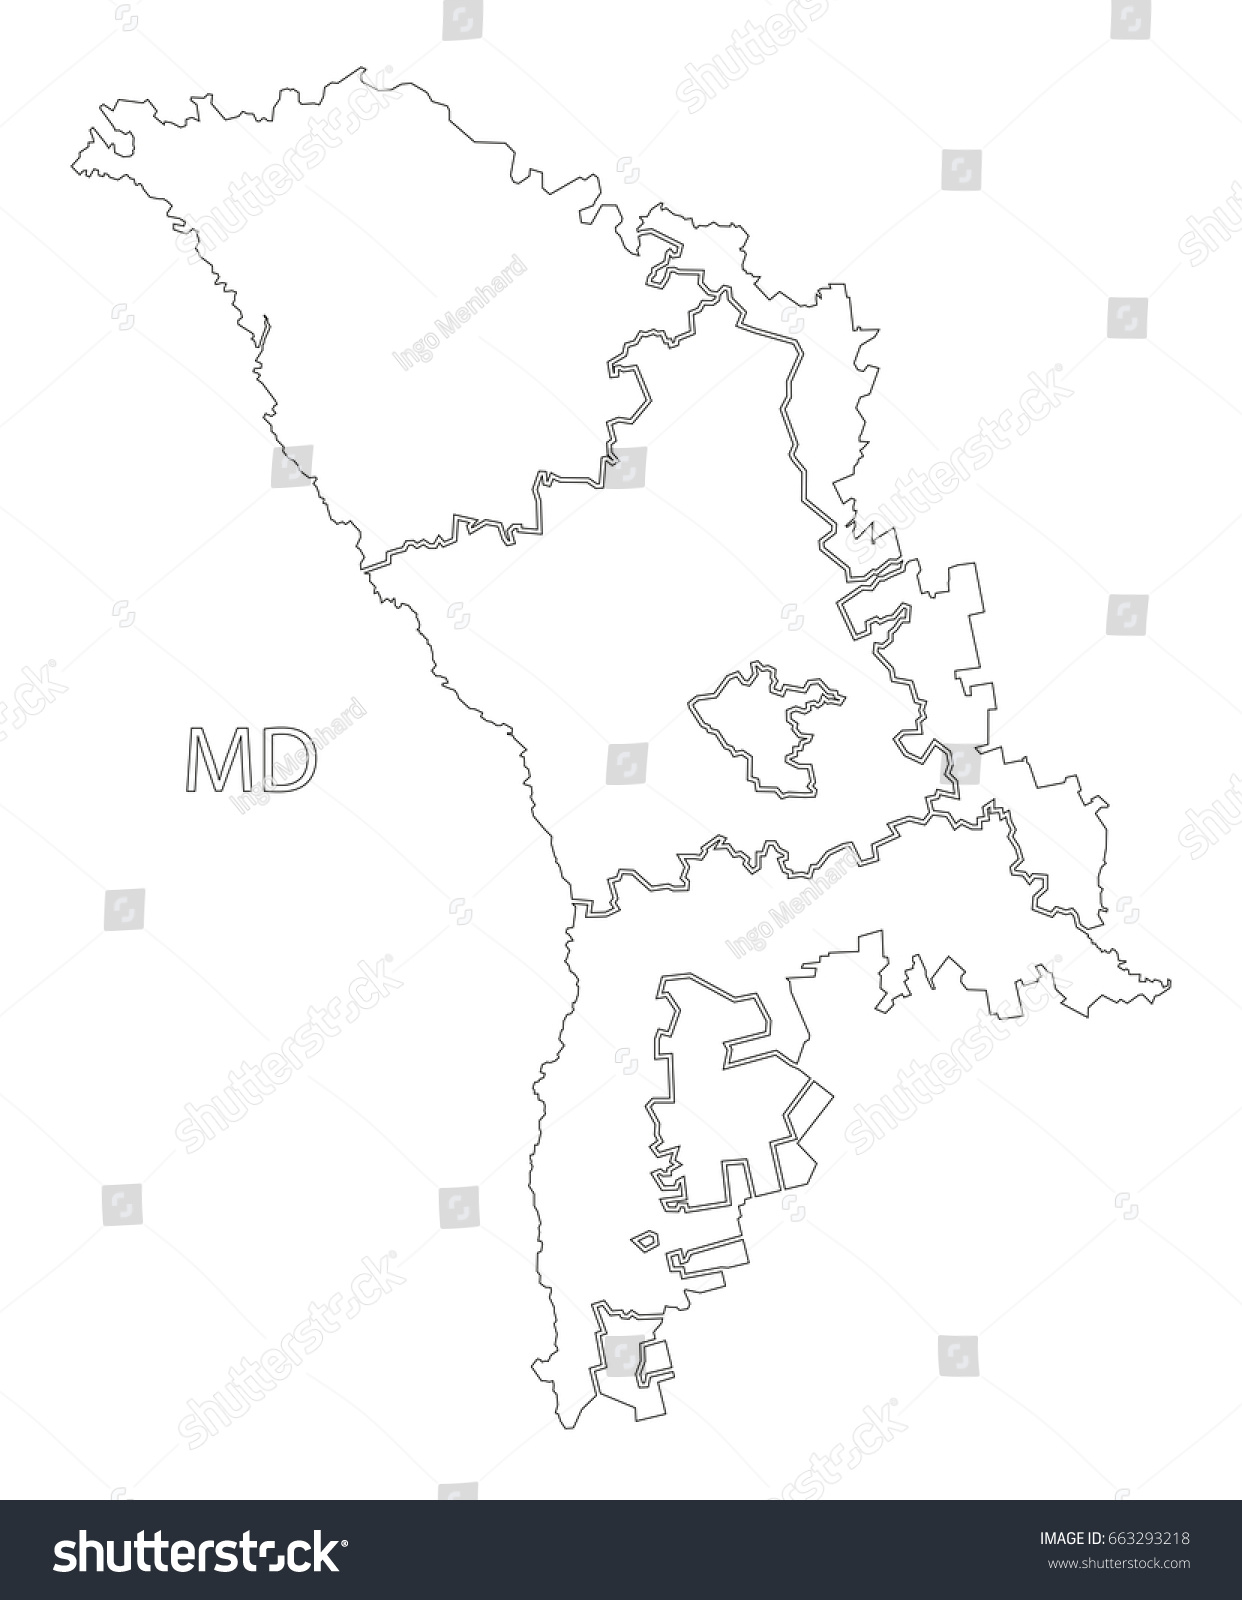 Moldova Districts Outline Silhouette Map Illustration Stock Vector - Moldova map outline